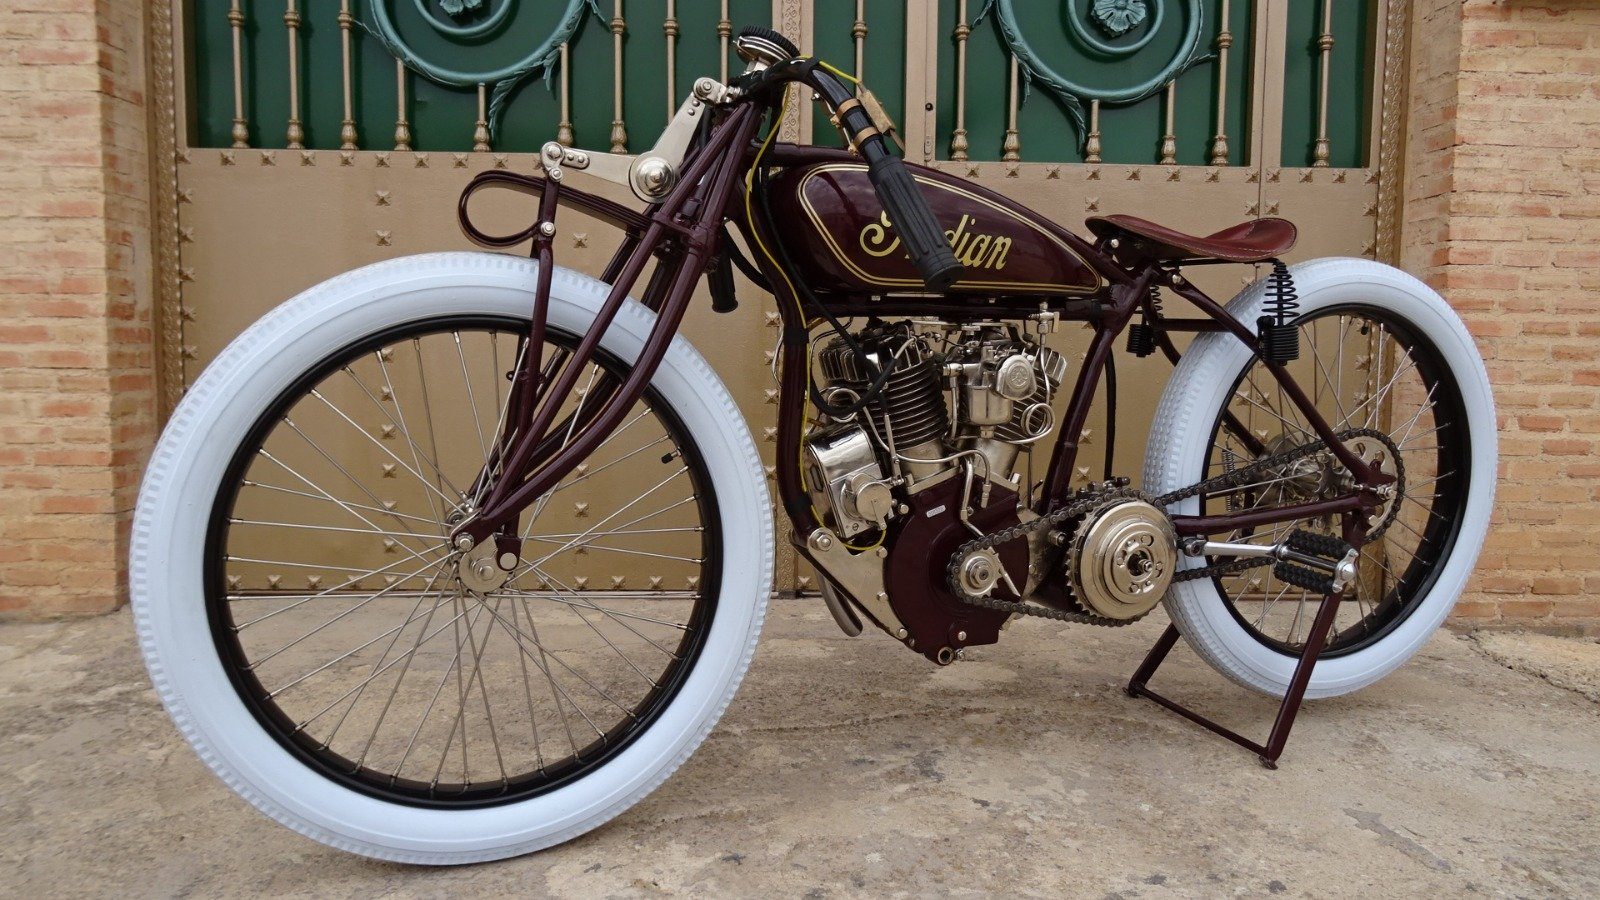 1920 INDIAN POWERPLUS TT RACER 1000cc For Sale (picture 2 of 6)